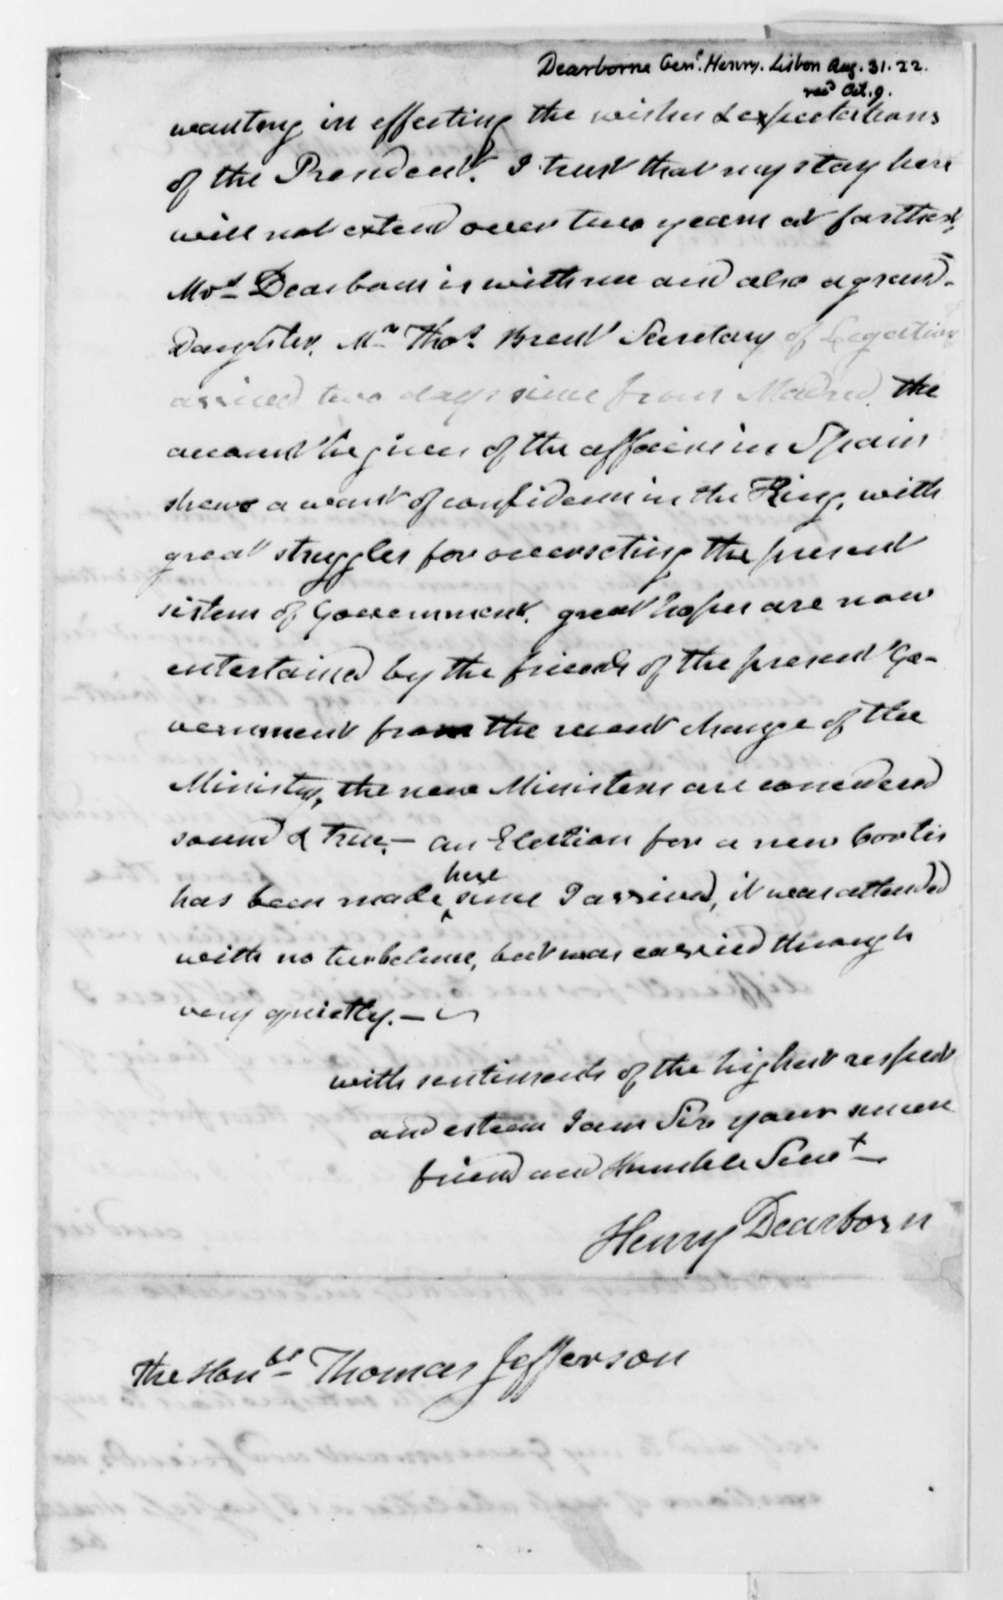 Henry Dearborn to Thomas Jefferson, August 31, 1822